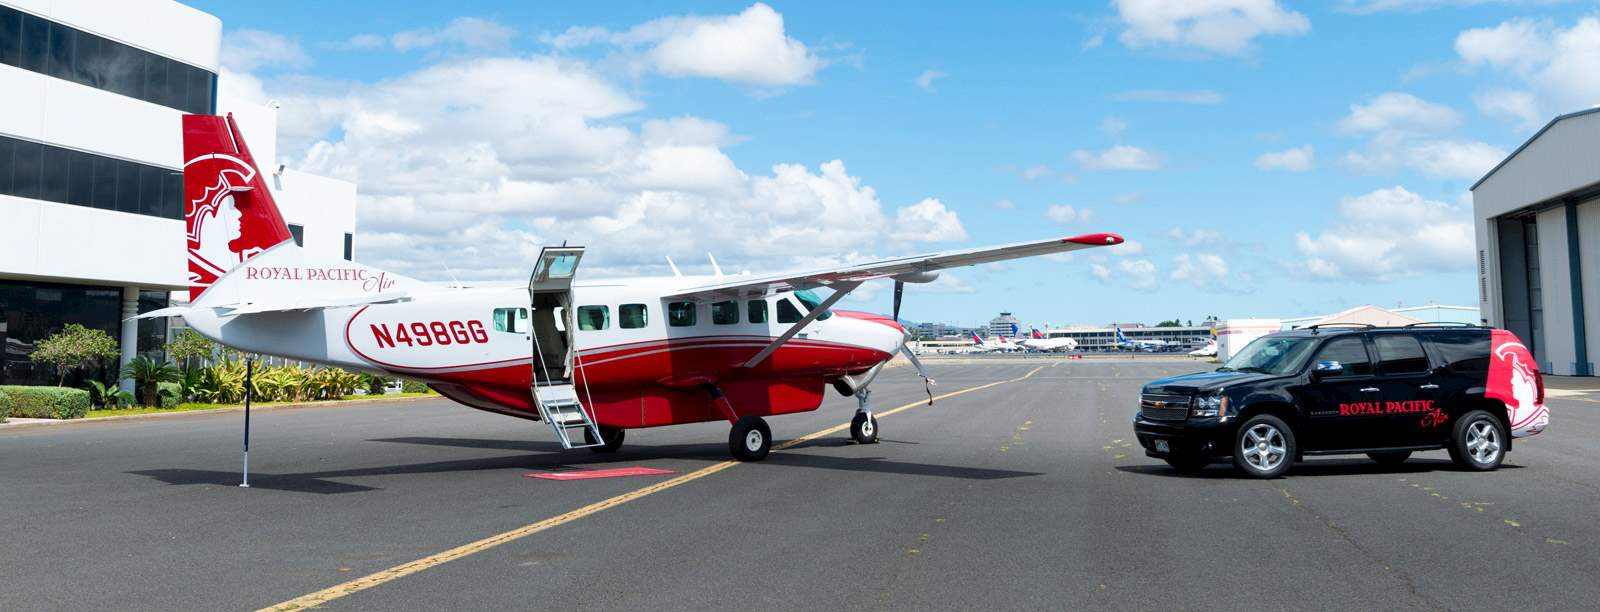 About Us - Royal Pacific Air Charter